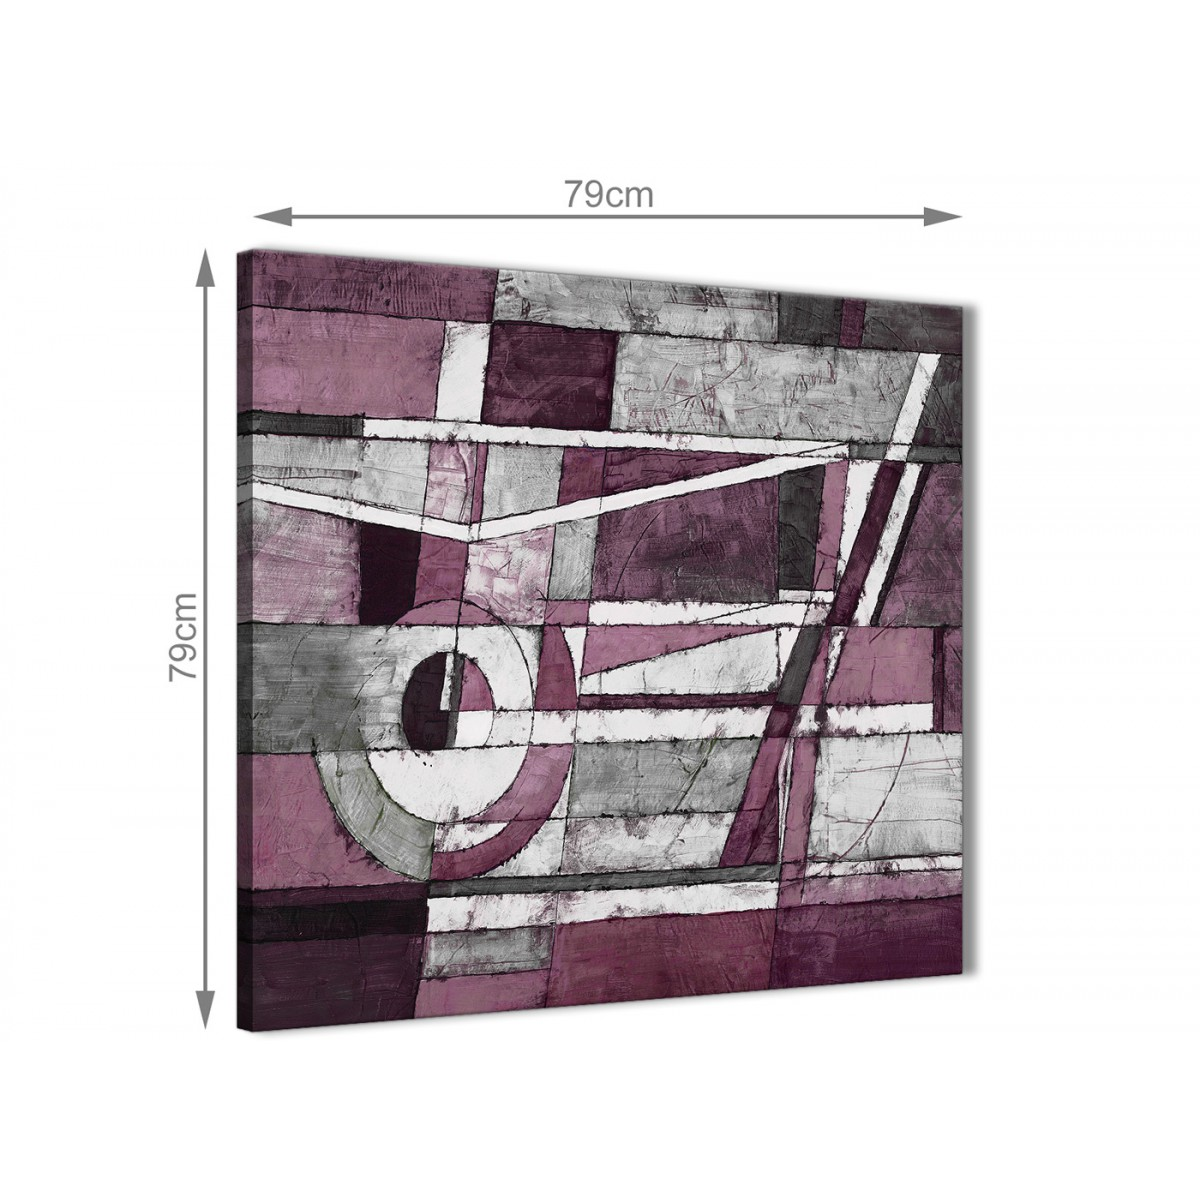 plum grey white painting abstract office canvas pictures accessories 1s408l 79cm square print. Black Bedroom Furniture Sets. Home Design Ideas